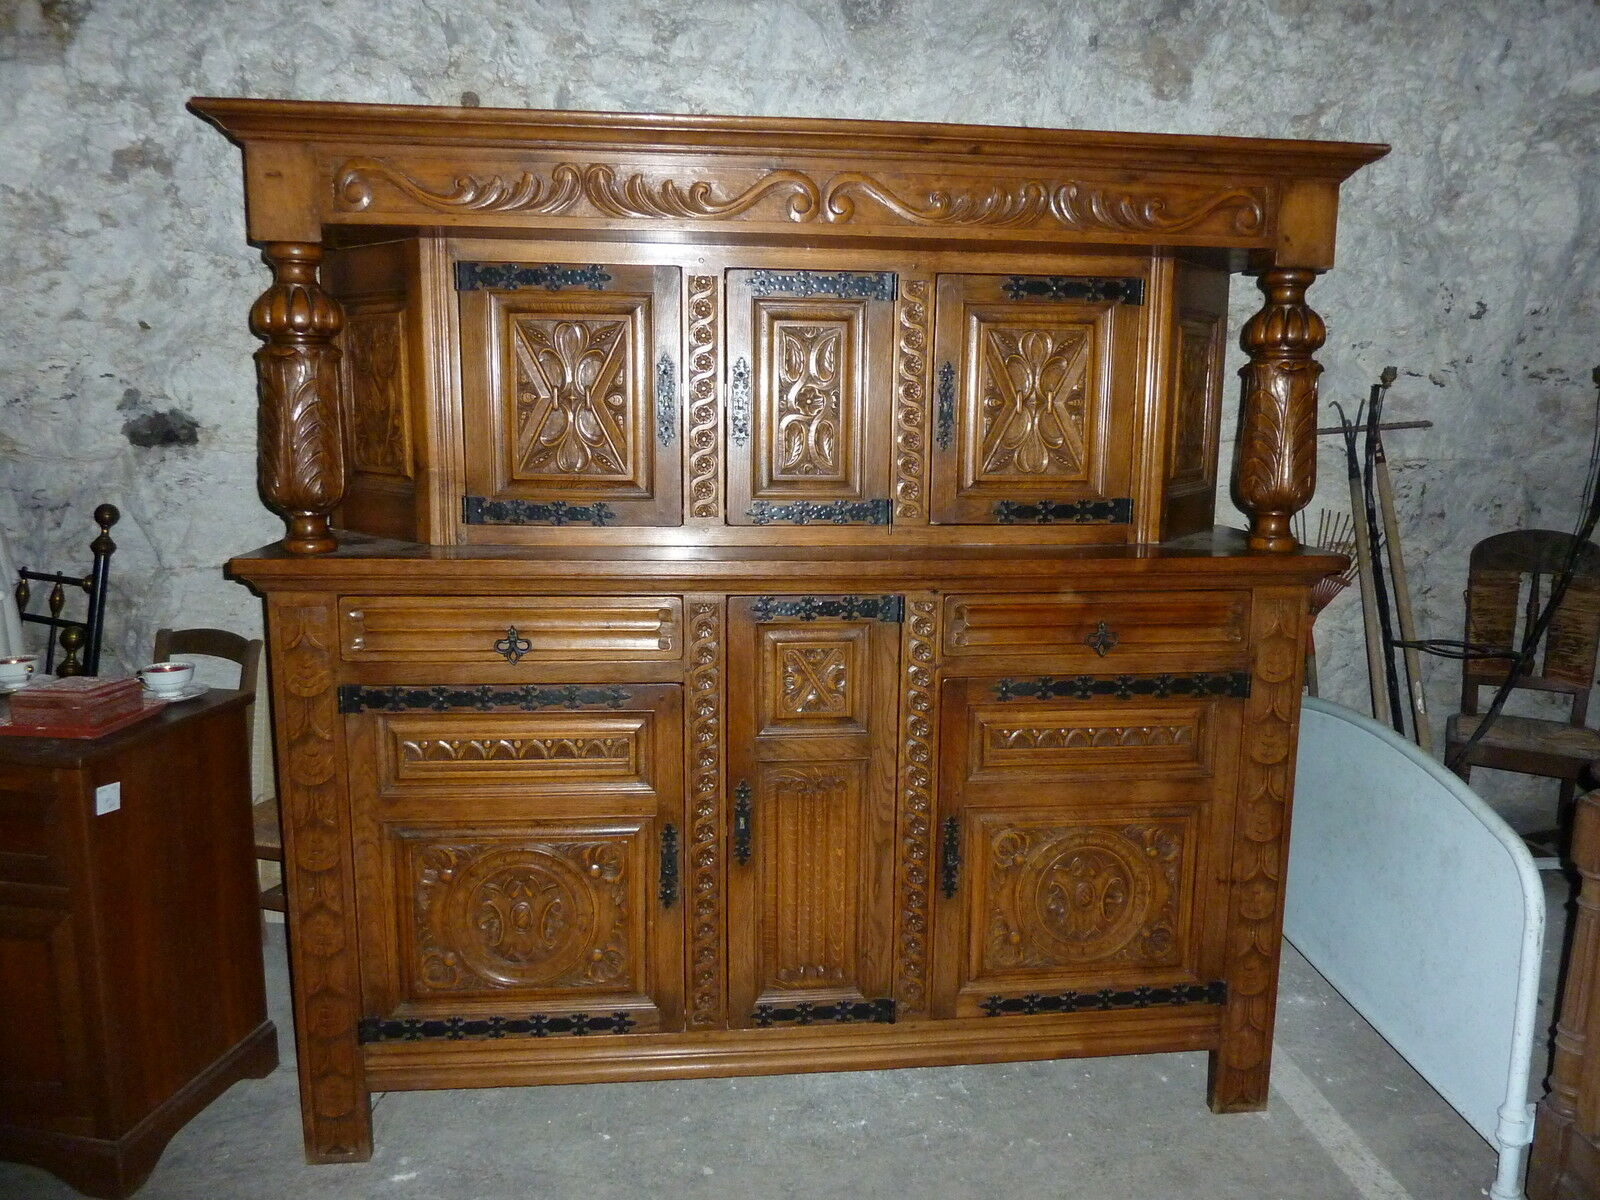 ref 728 buffet deux corps rustique en ch ne massif meuble ancien sculpt eur 70 00 picclick fr. Black Bedroom Furniture Sets. Home Design Ideas